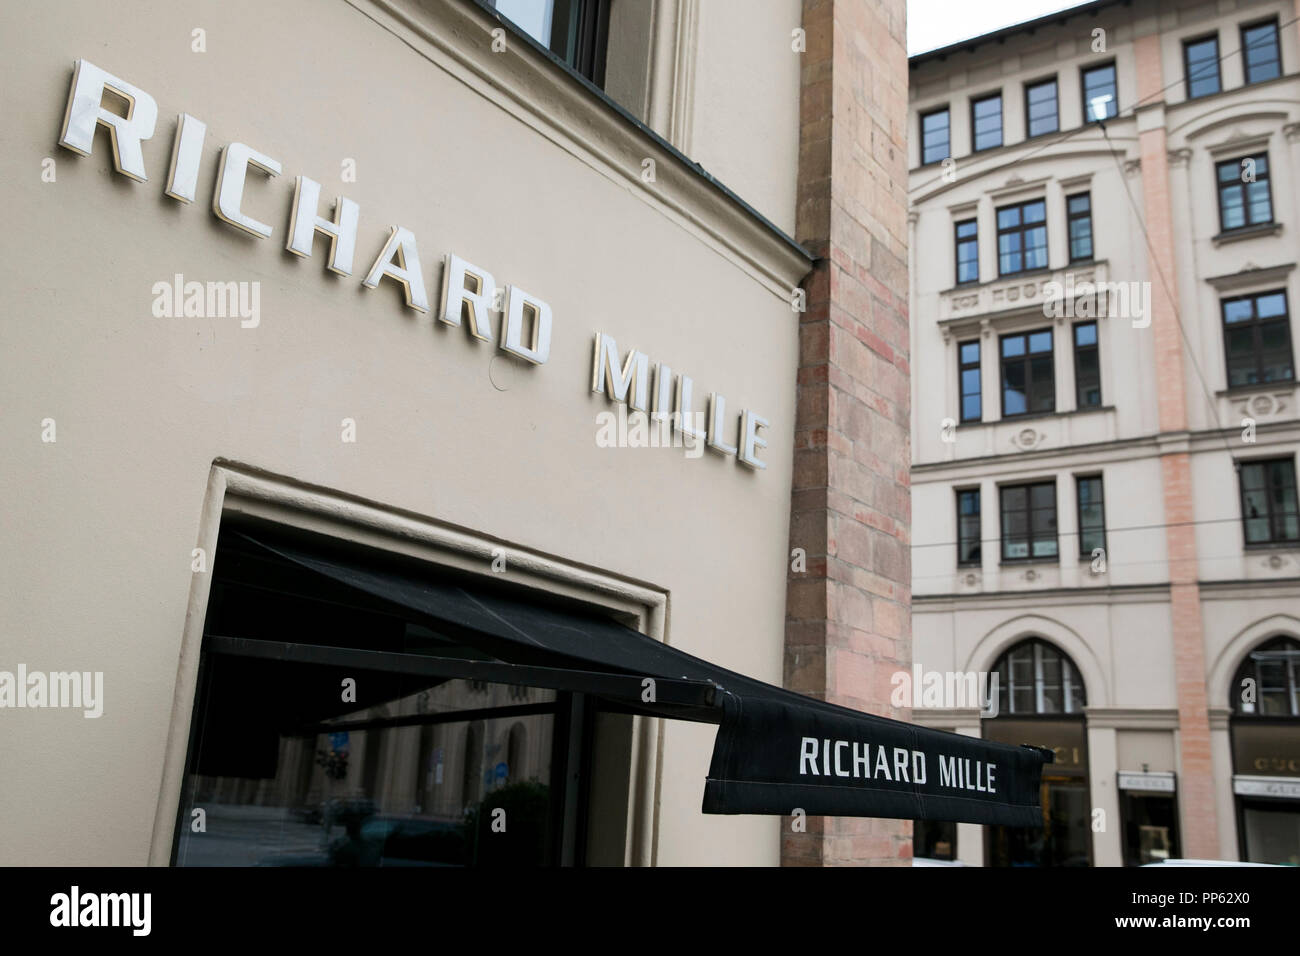 A logo sign outside of a Richard Mille retail store in Munich, Germany, on September 2, 2018. Stock Photo